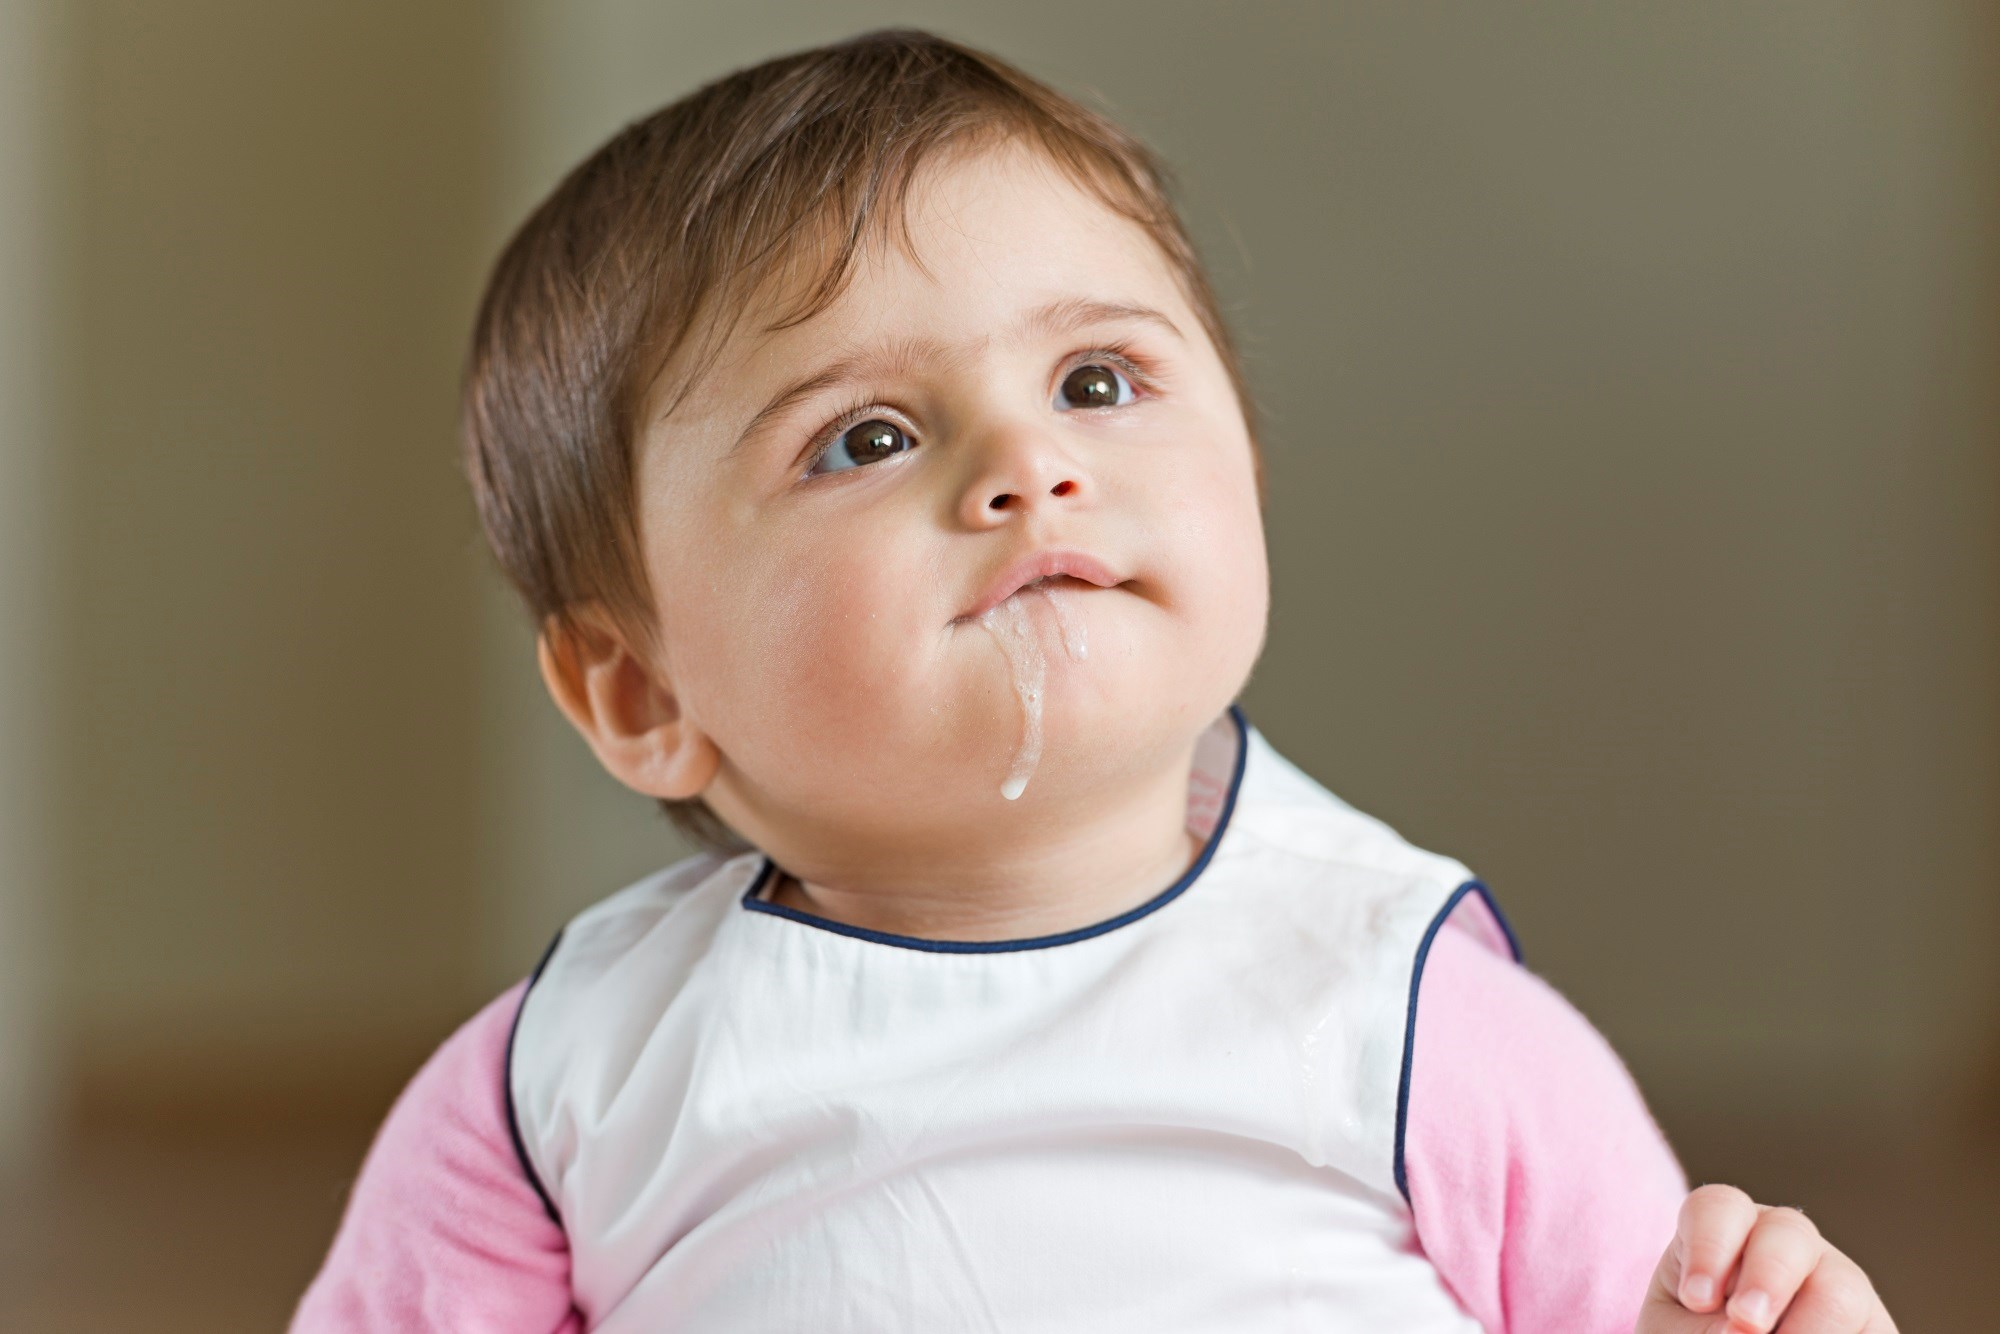 The most prevalent pulmonary symptom in infants who had GERD was cough.